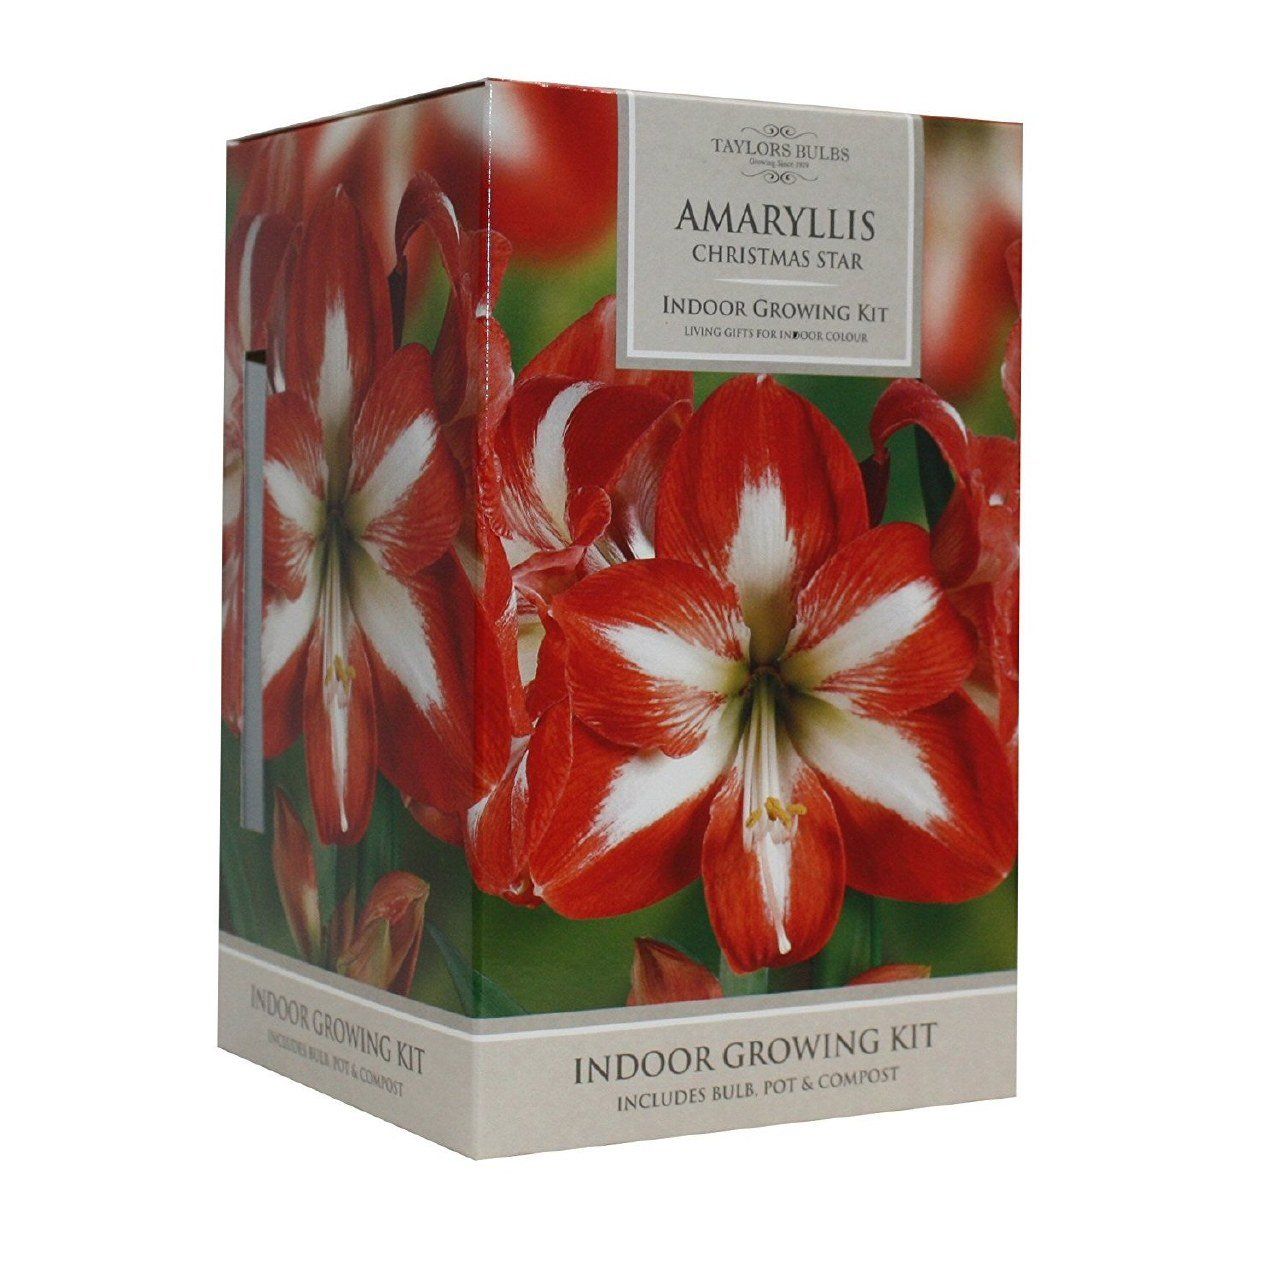 Amaryllis Christmas Star Taylors Bulbs